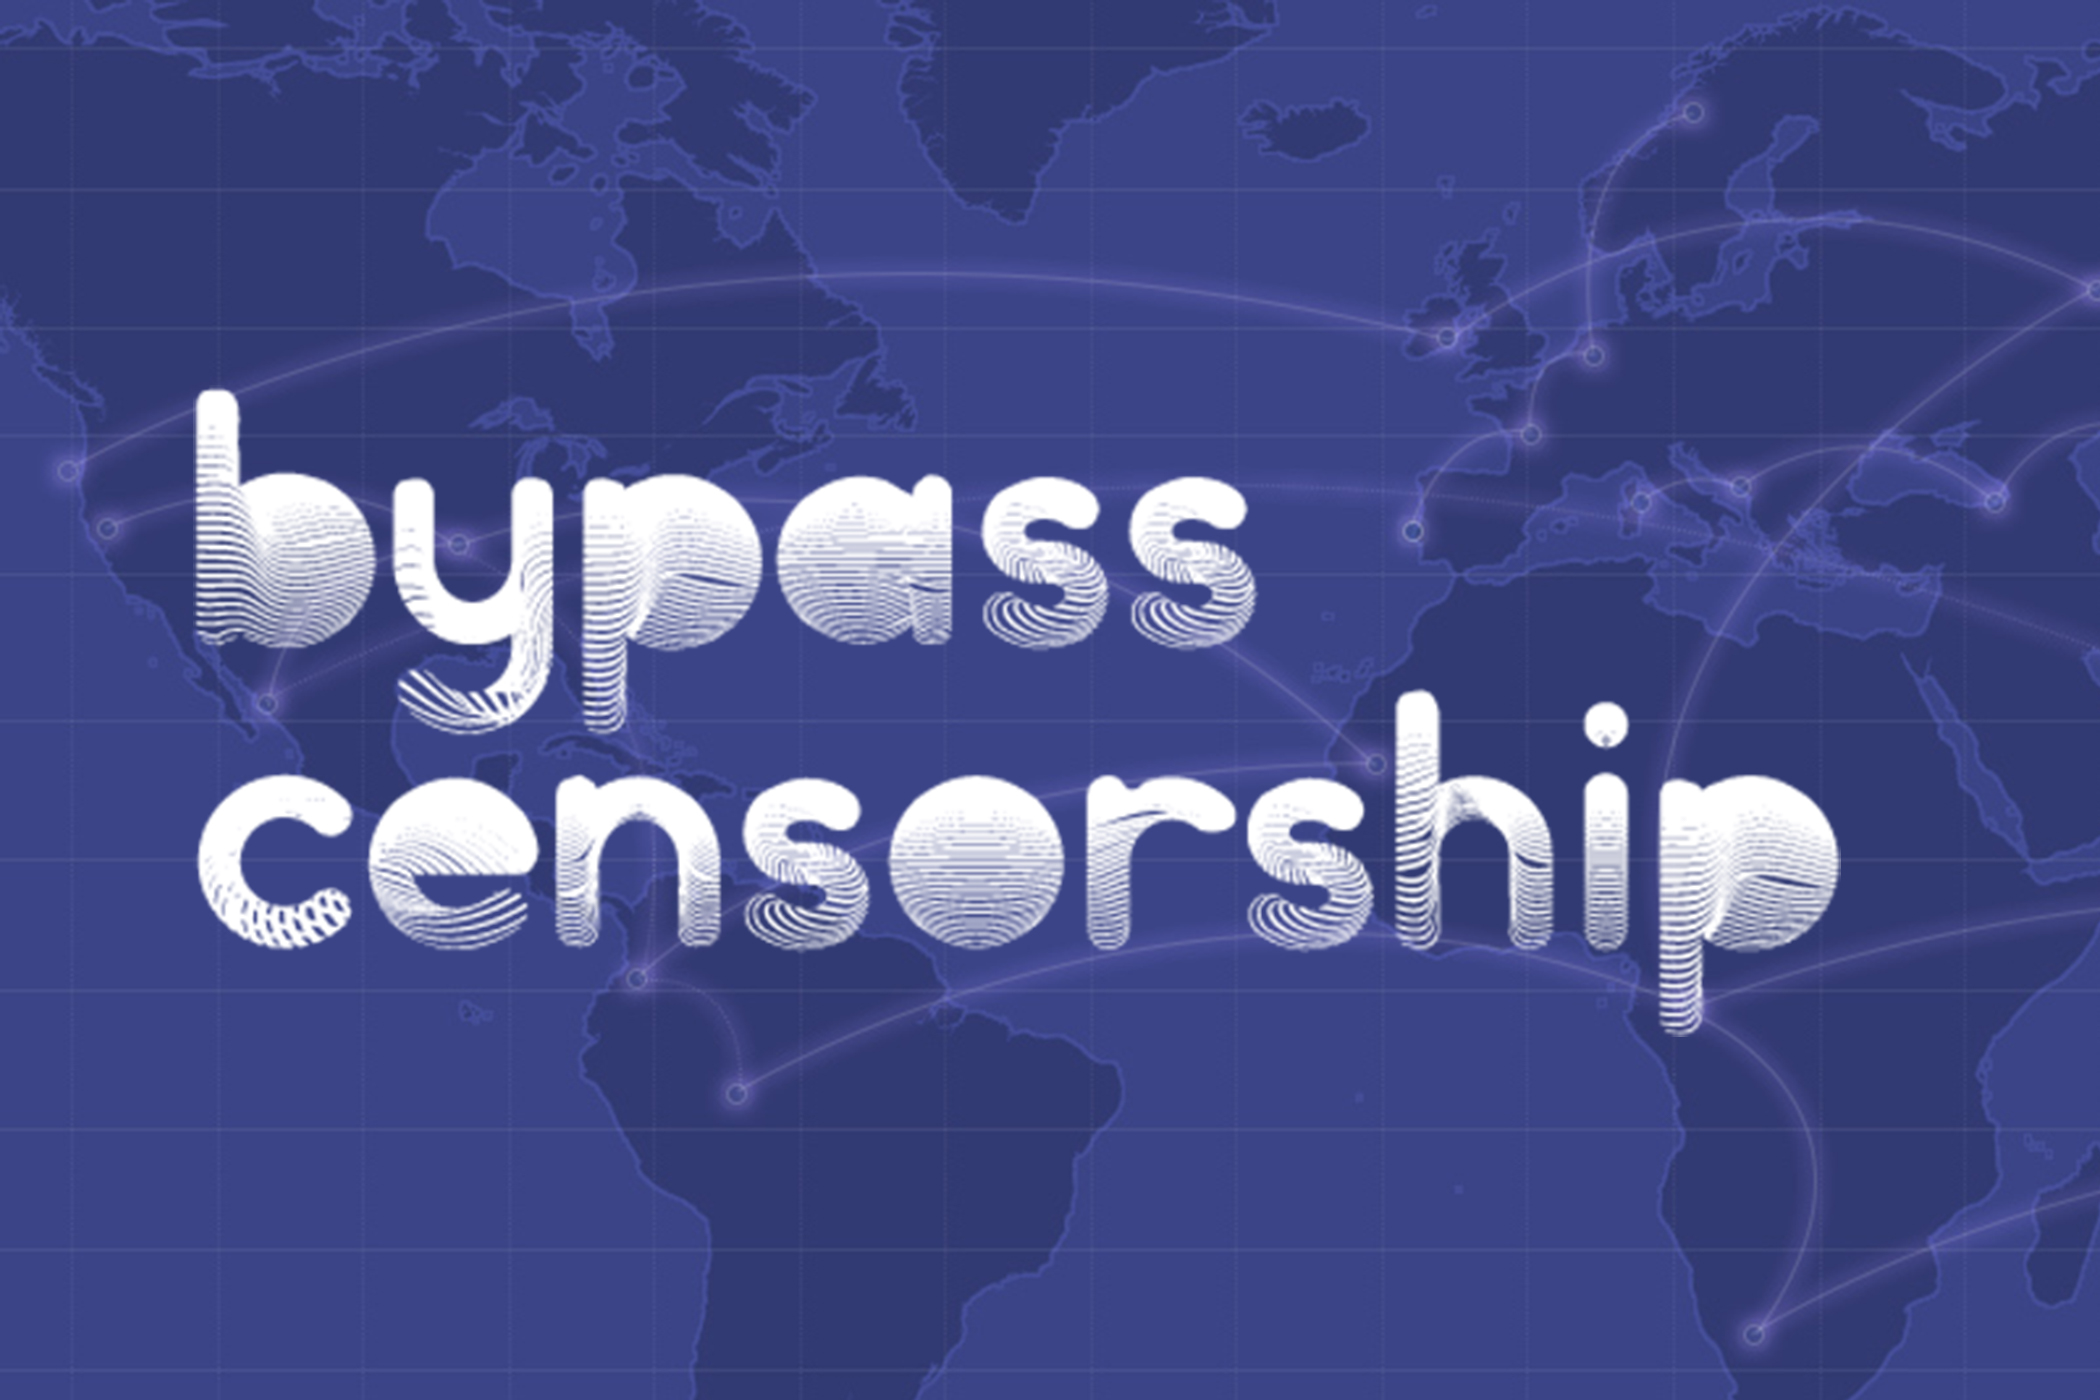 """Broadcasters promote news freedom via""""Bypass Censorship""""website"""